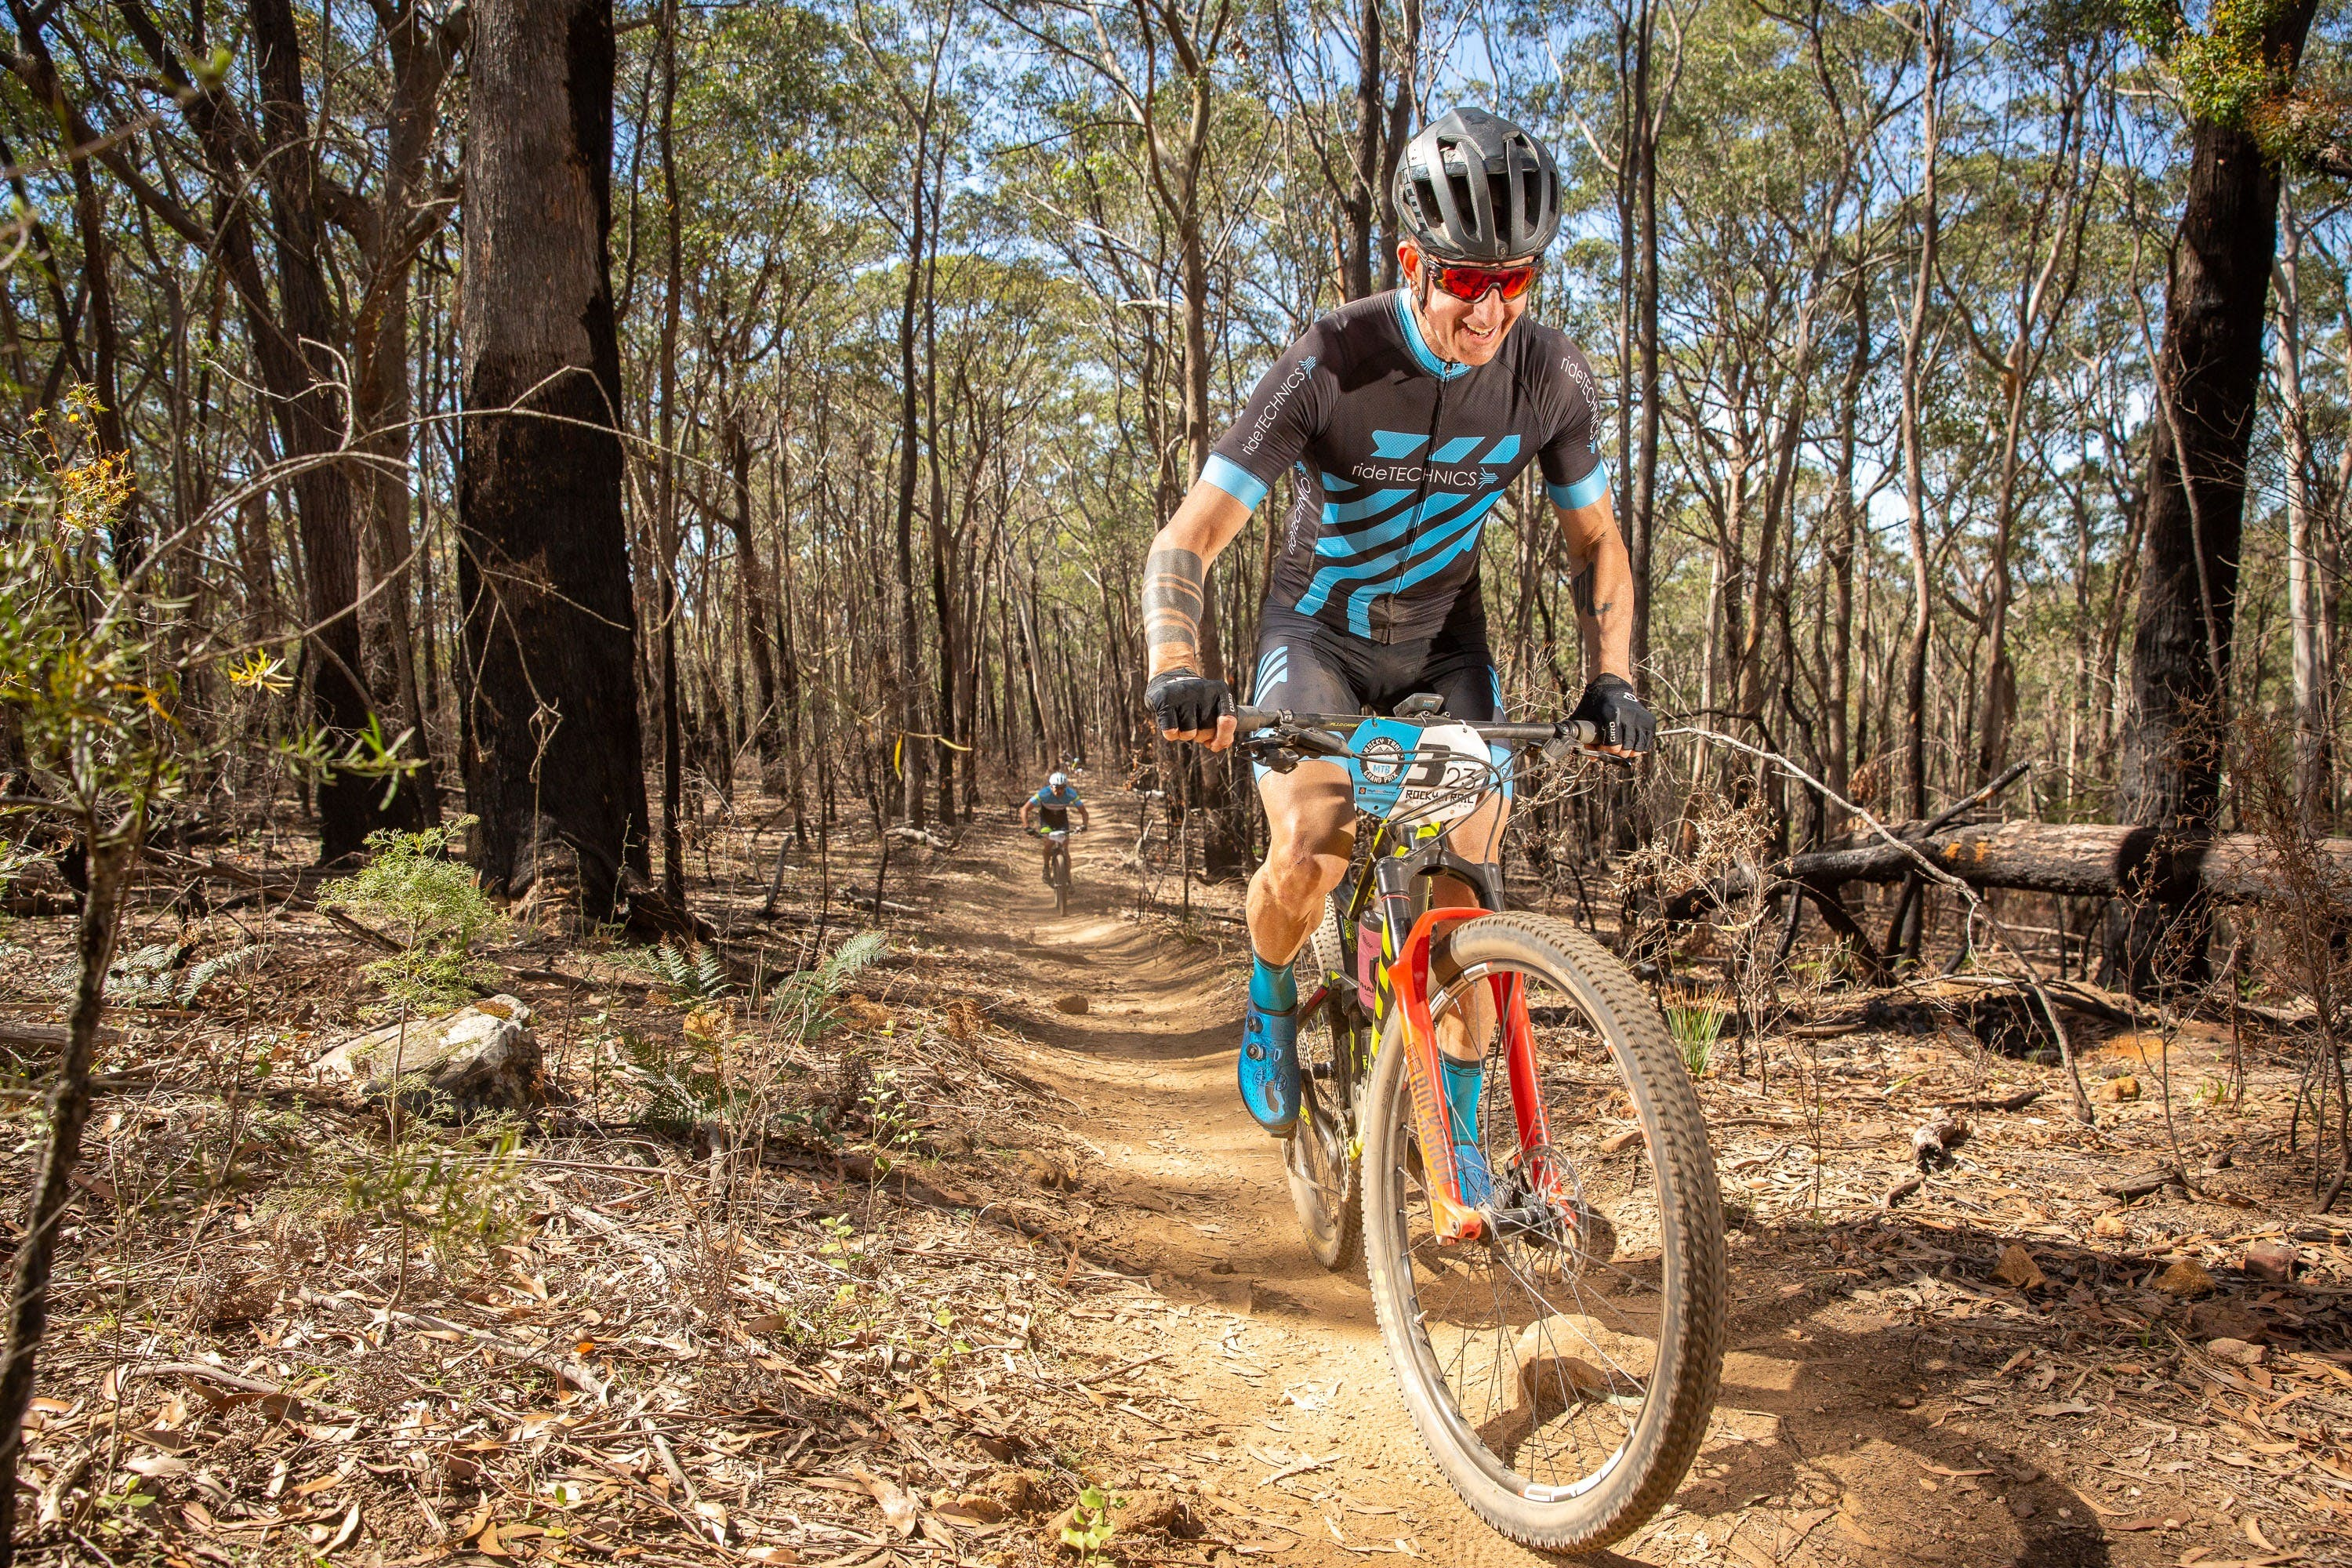 Shimano Mountain Bike Grand Prix Race Six Kempsey - Accommodation Ballina